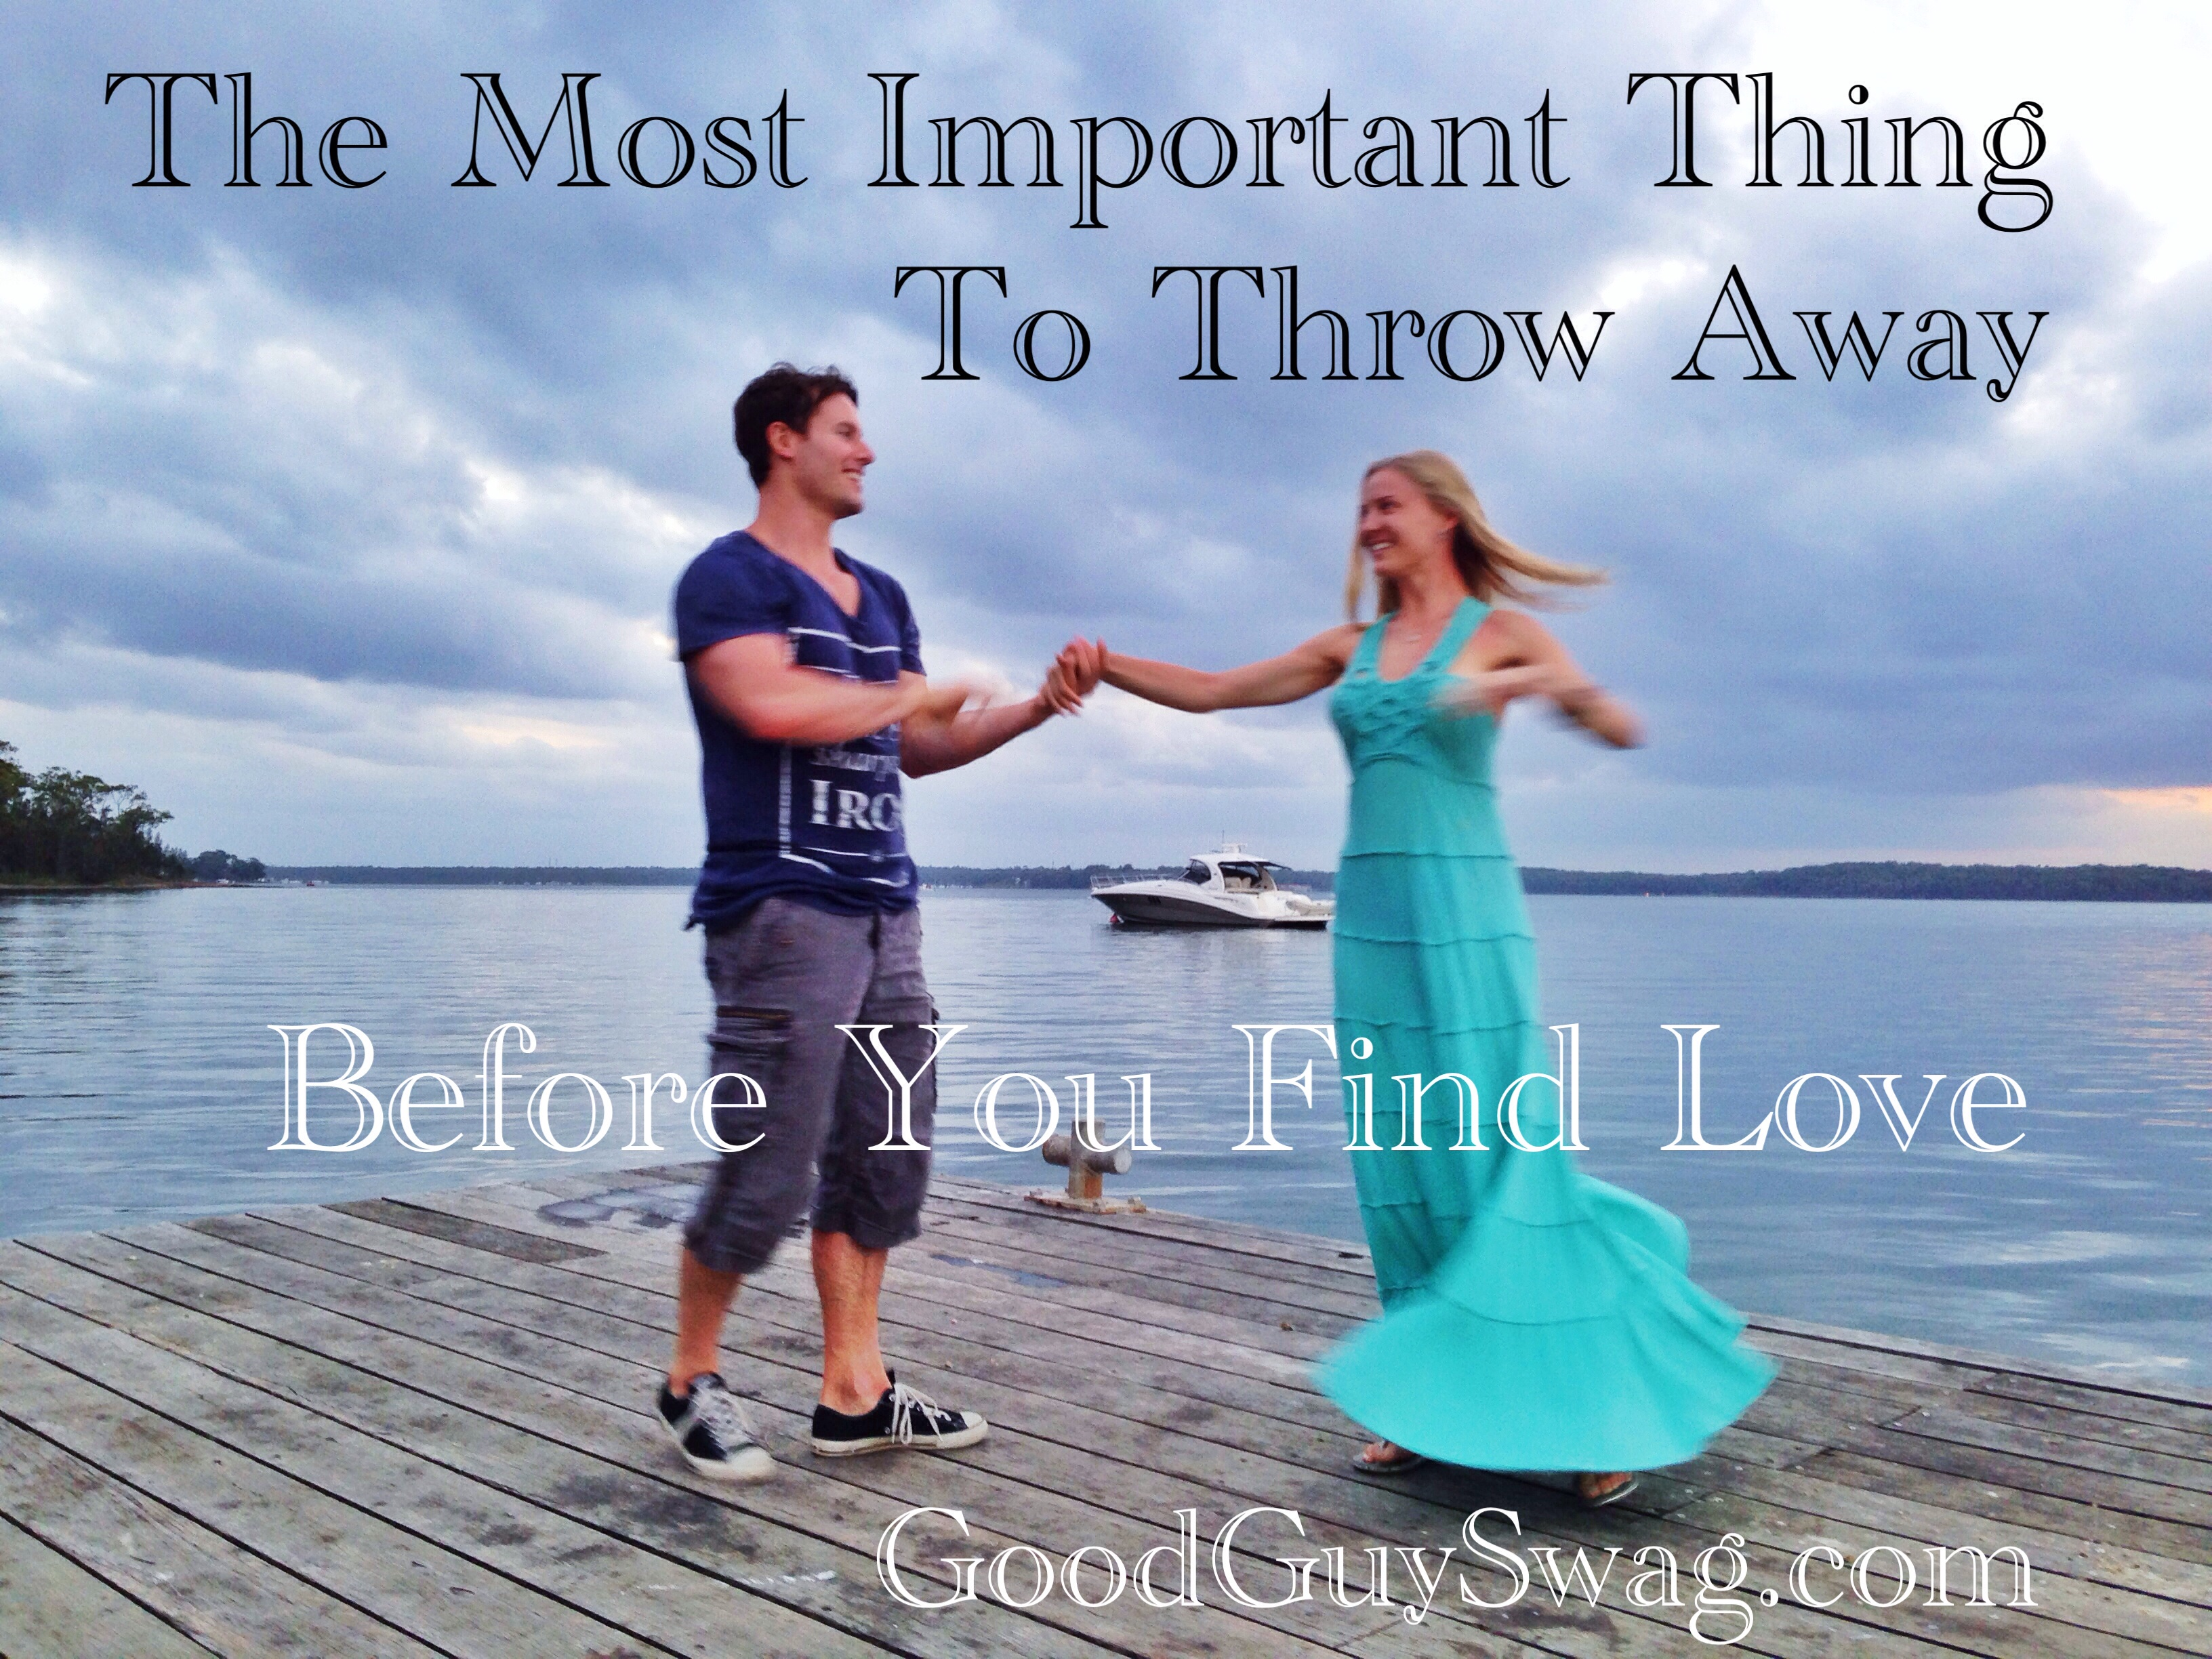 The Most Important Thing To Throw Away Before you Find Love